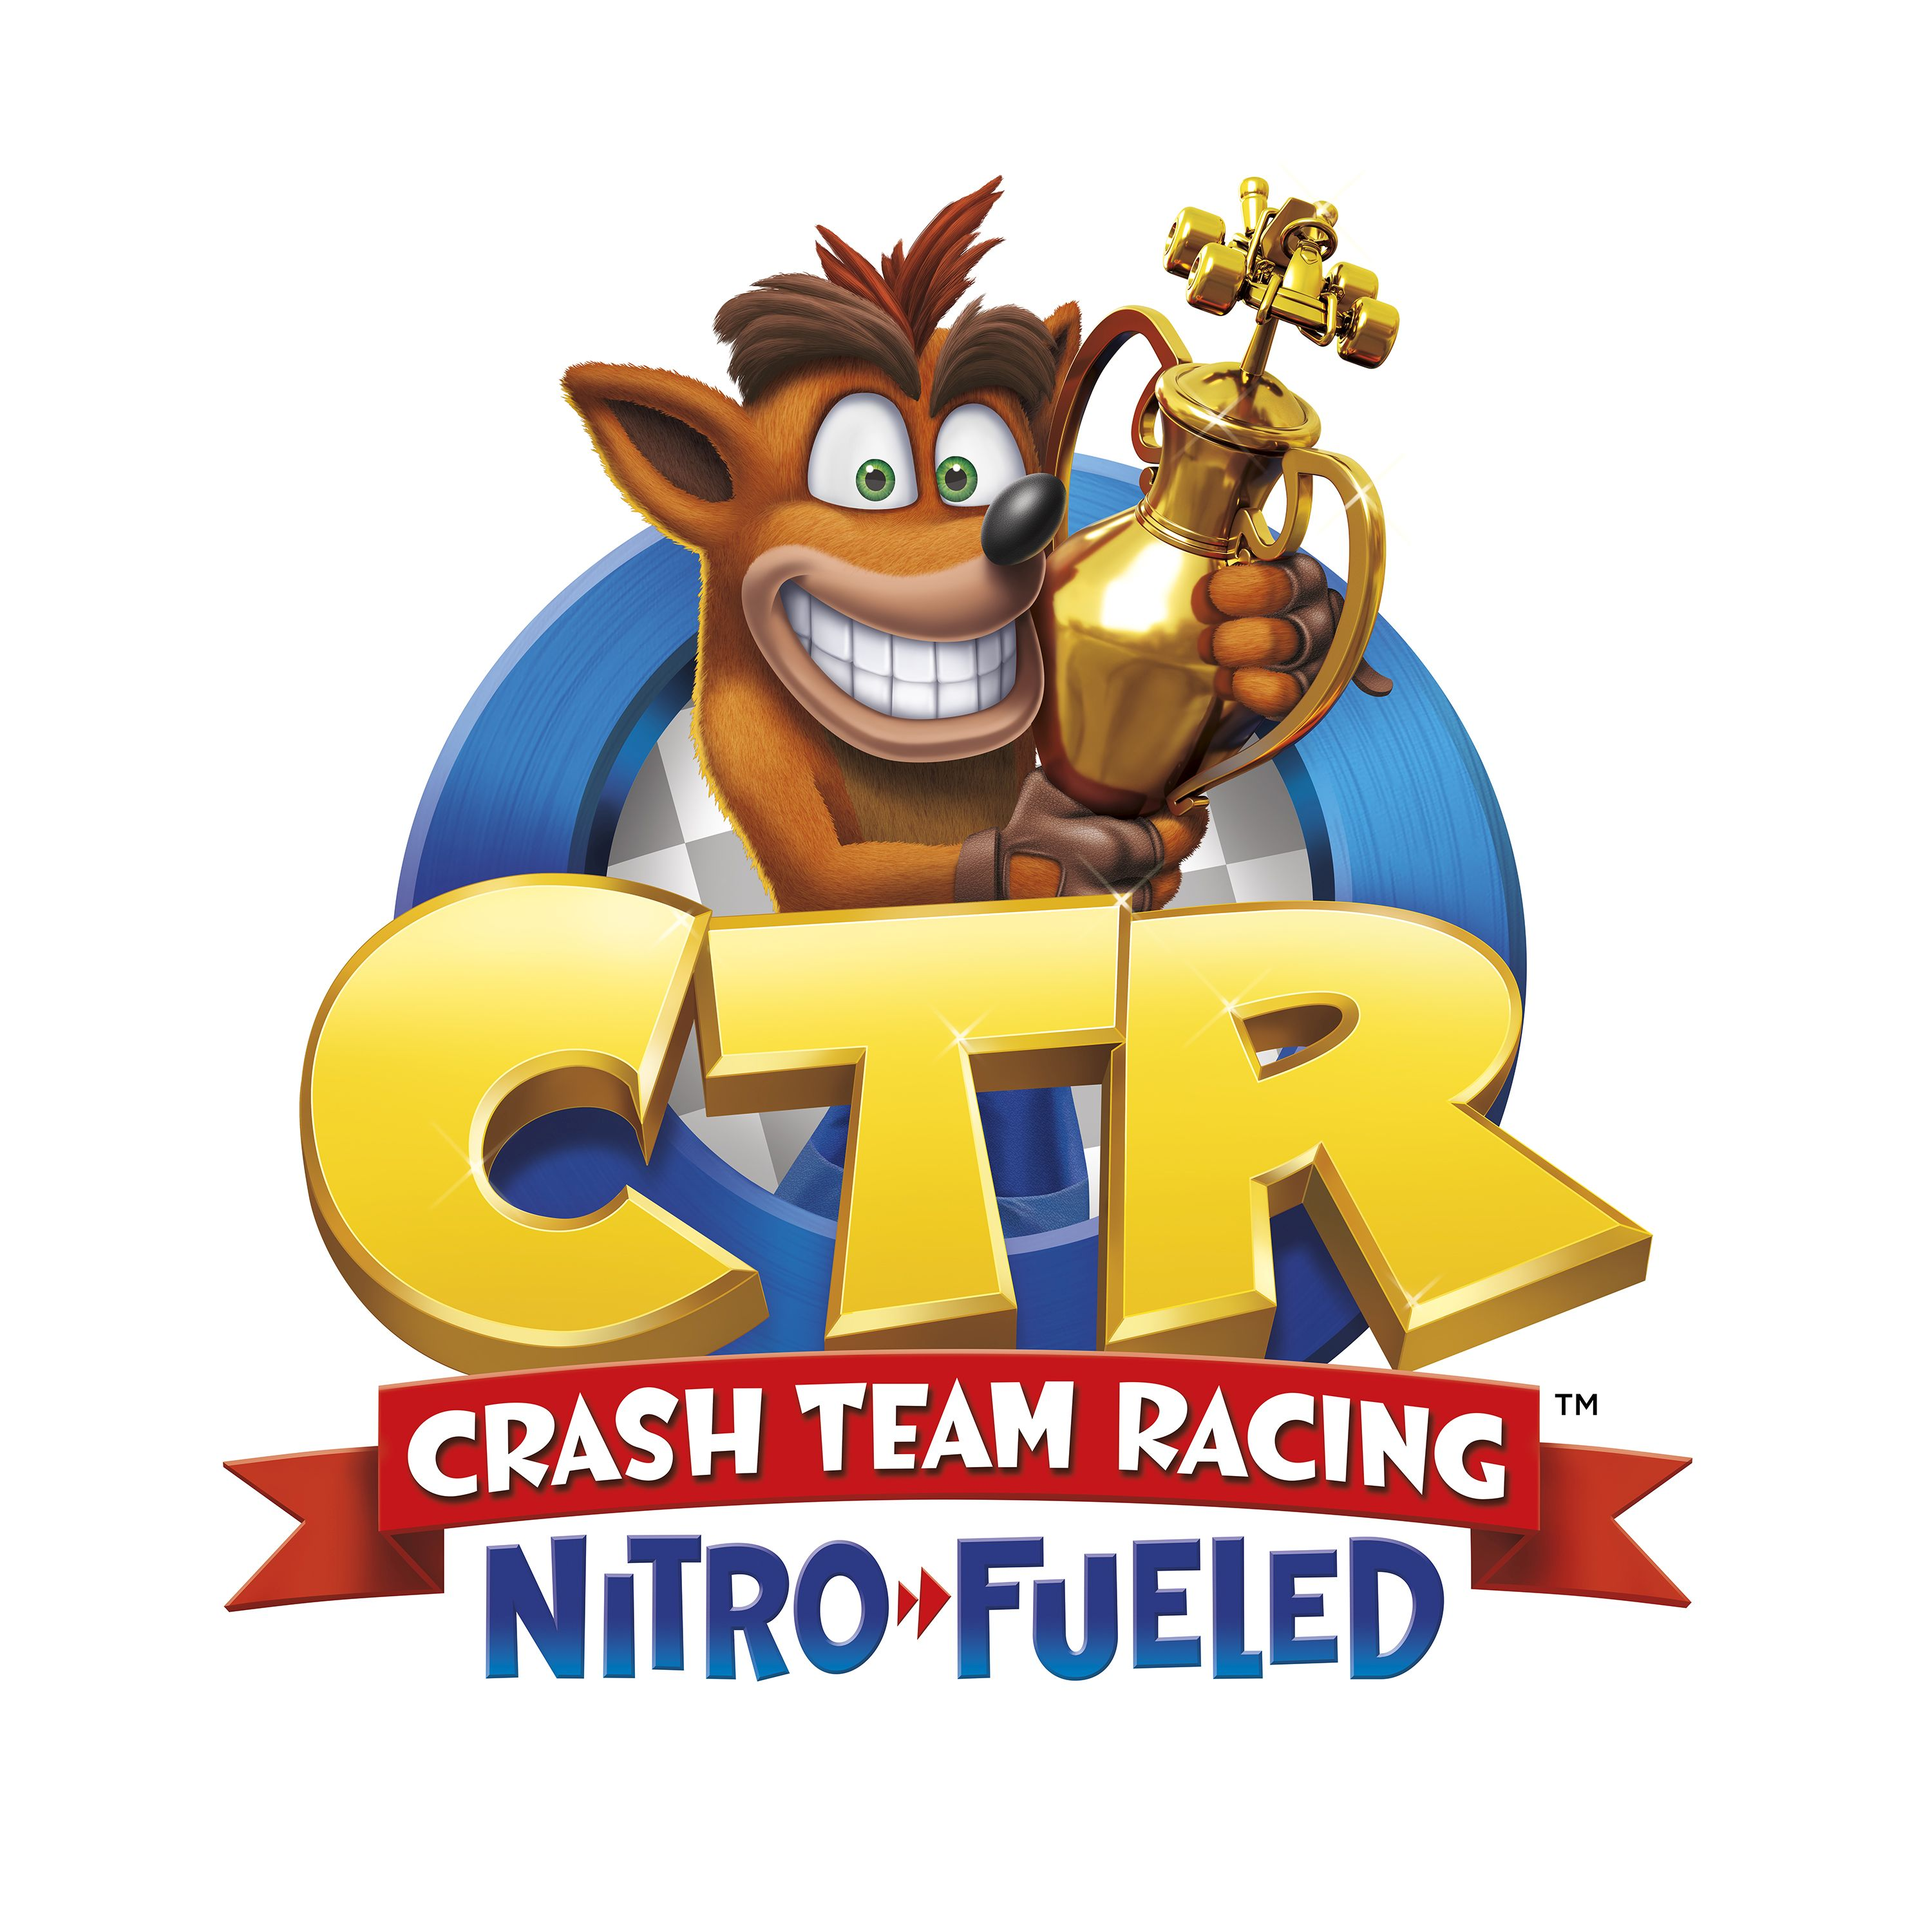 7f504cc48 Crash Team Racing Nitro-Fueled Trailer And Screencaps | Nothing But Geek